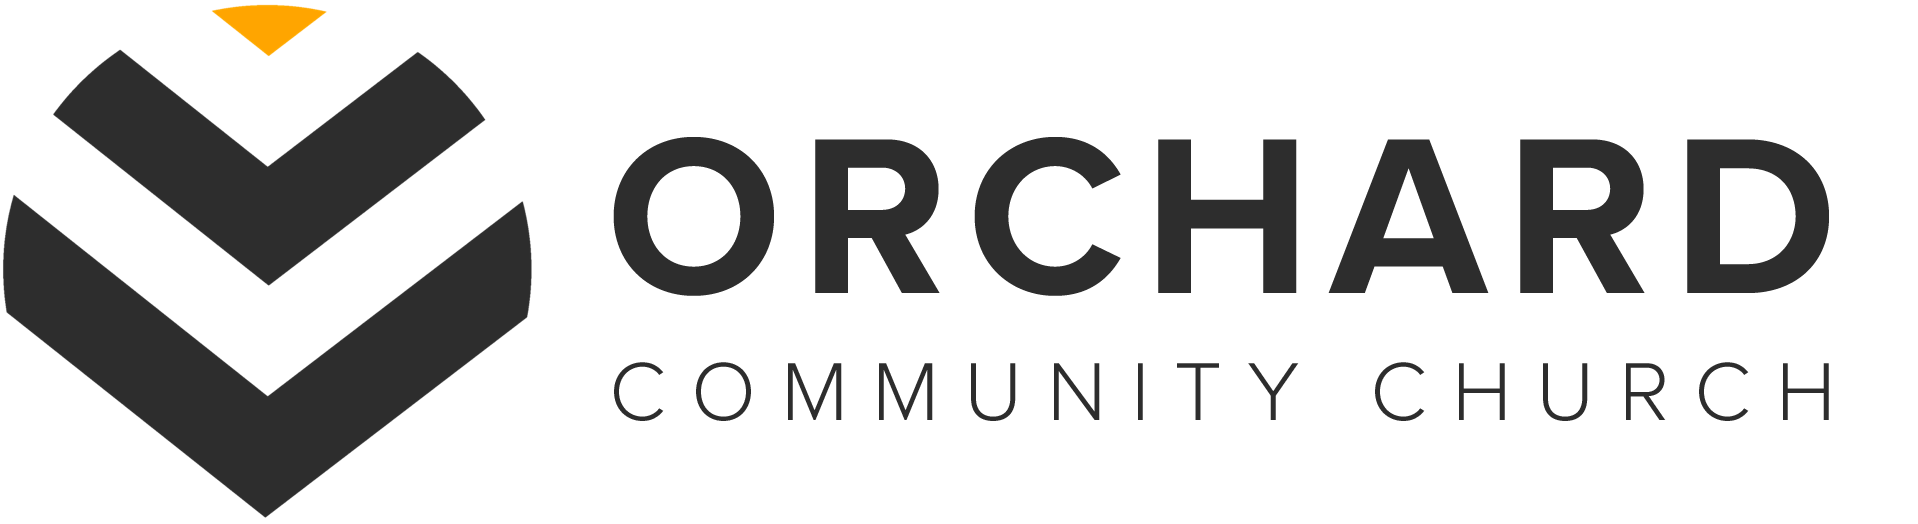 Orchard Community Church